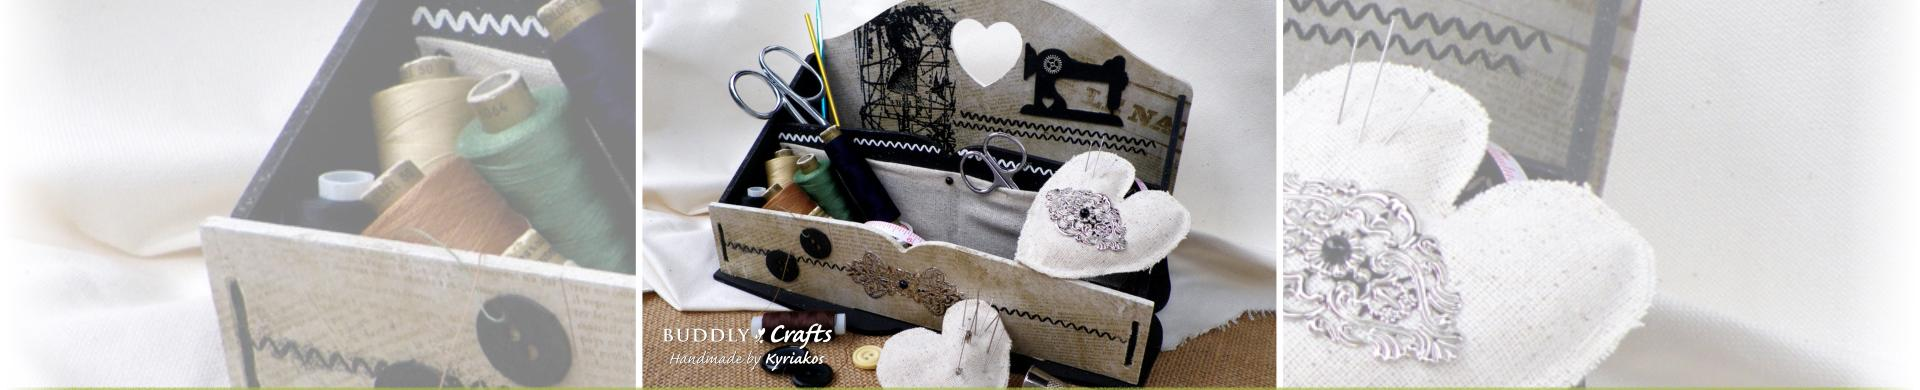 Make your own MDF Sewing Storage Box